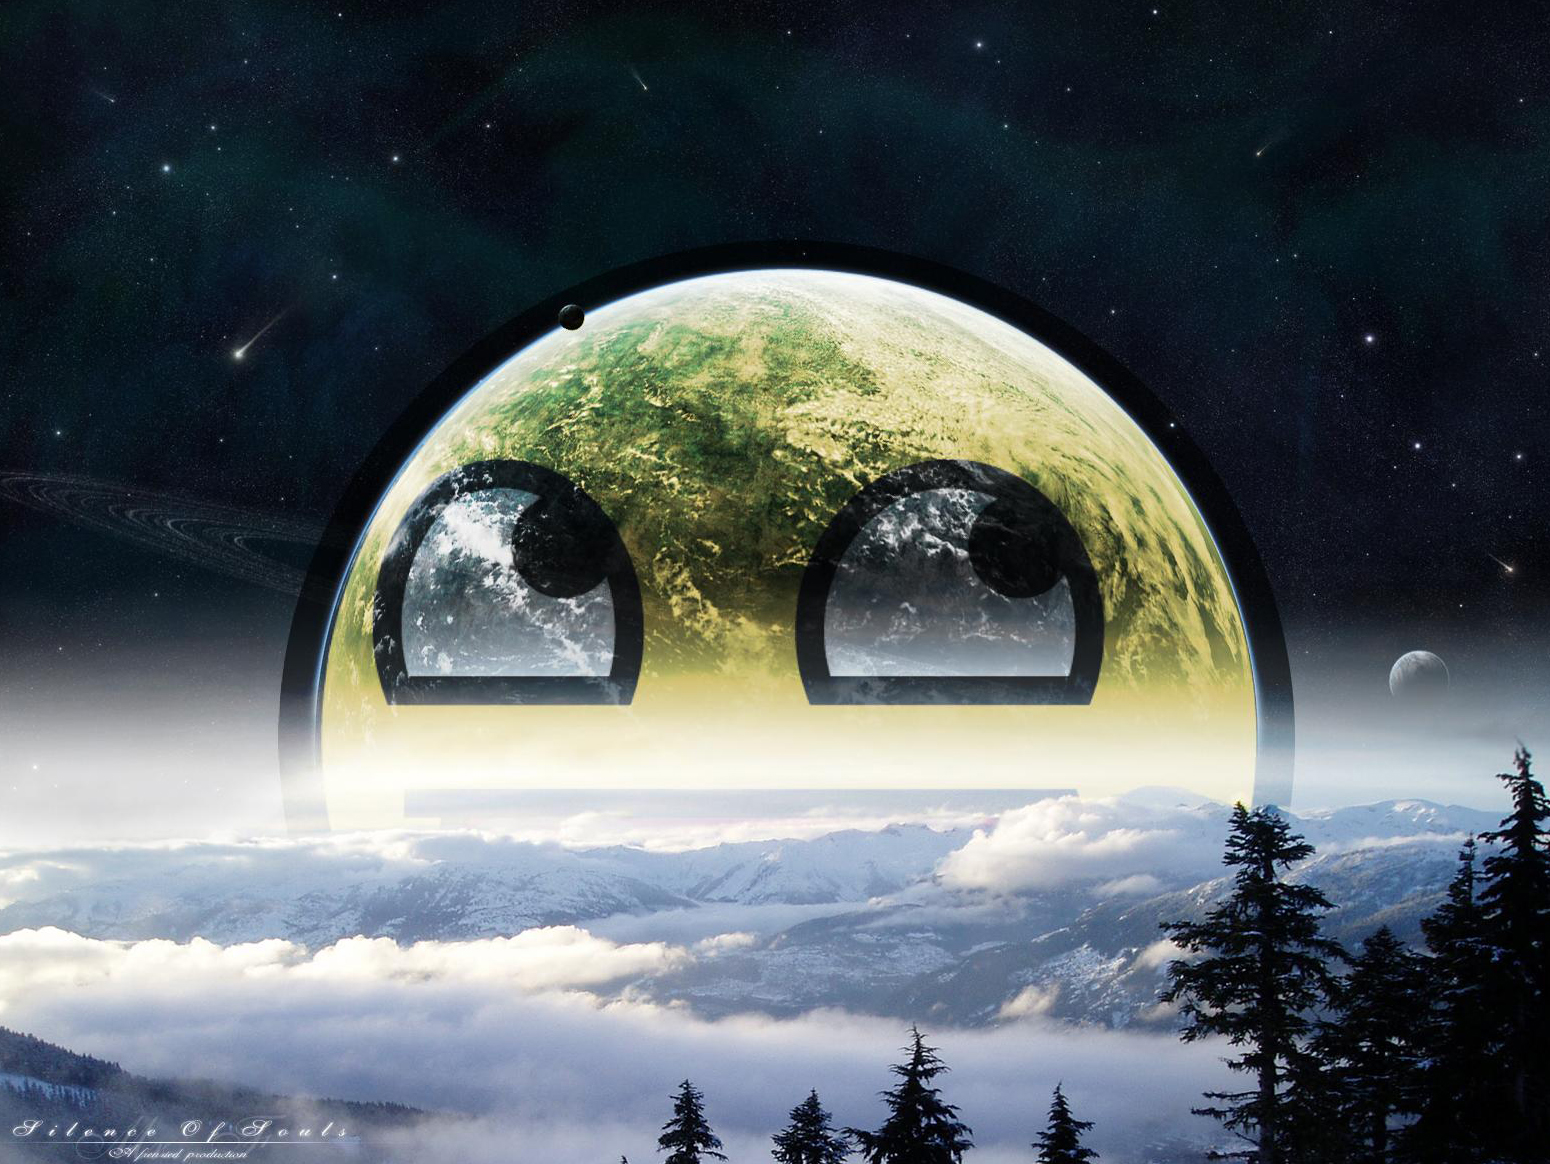 Animate walls new xp wallpapers windows7windows8 xp7 pc for Wallpaper mobile home walls